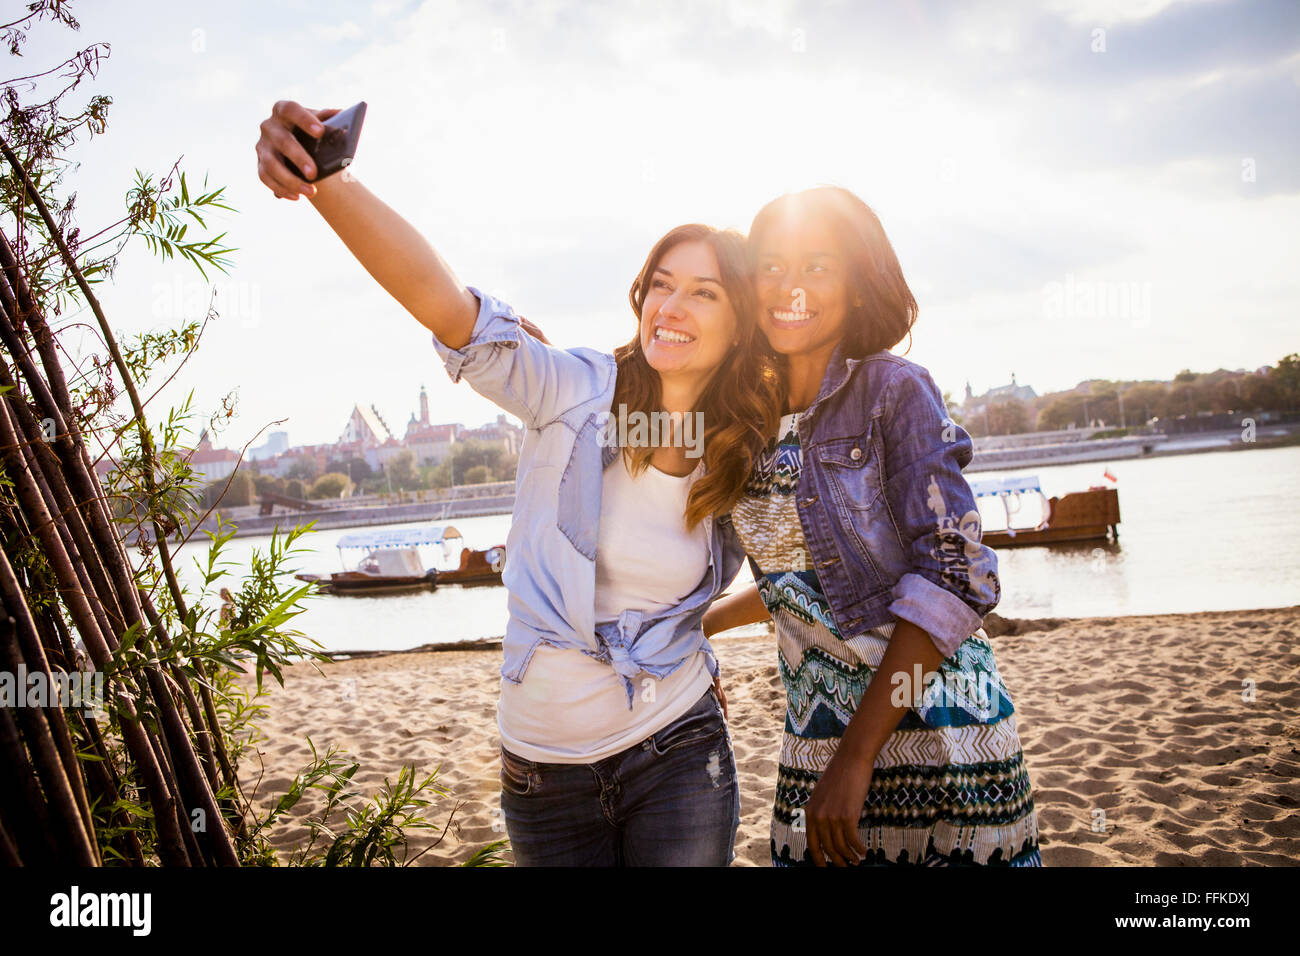 Woman and girlfriend taking a selfie with smartphone - Stock Image